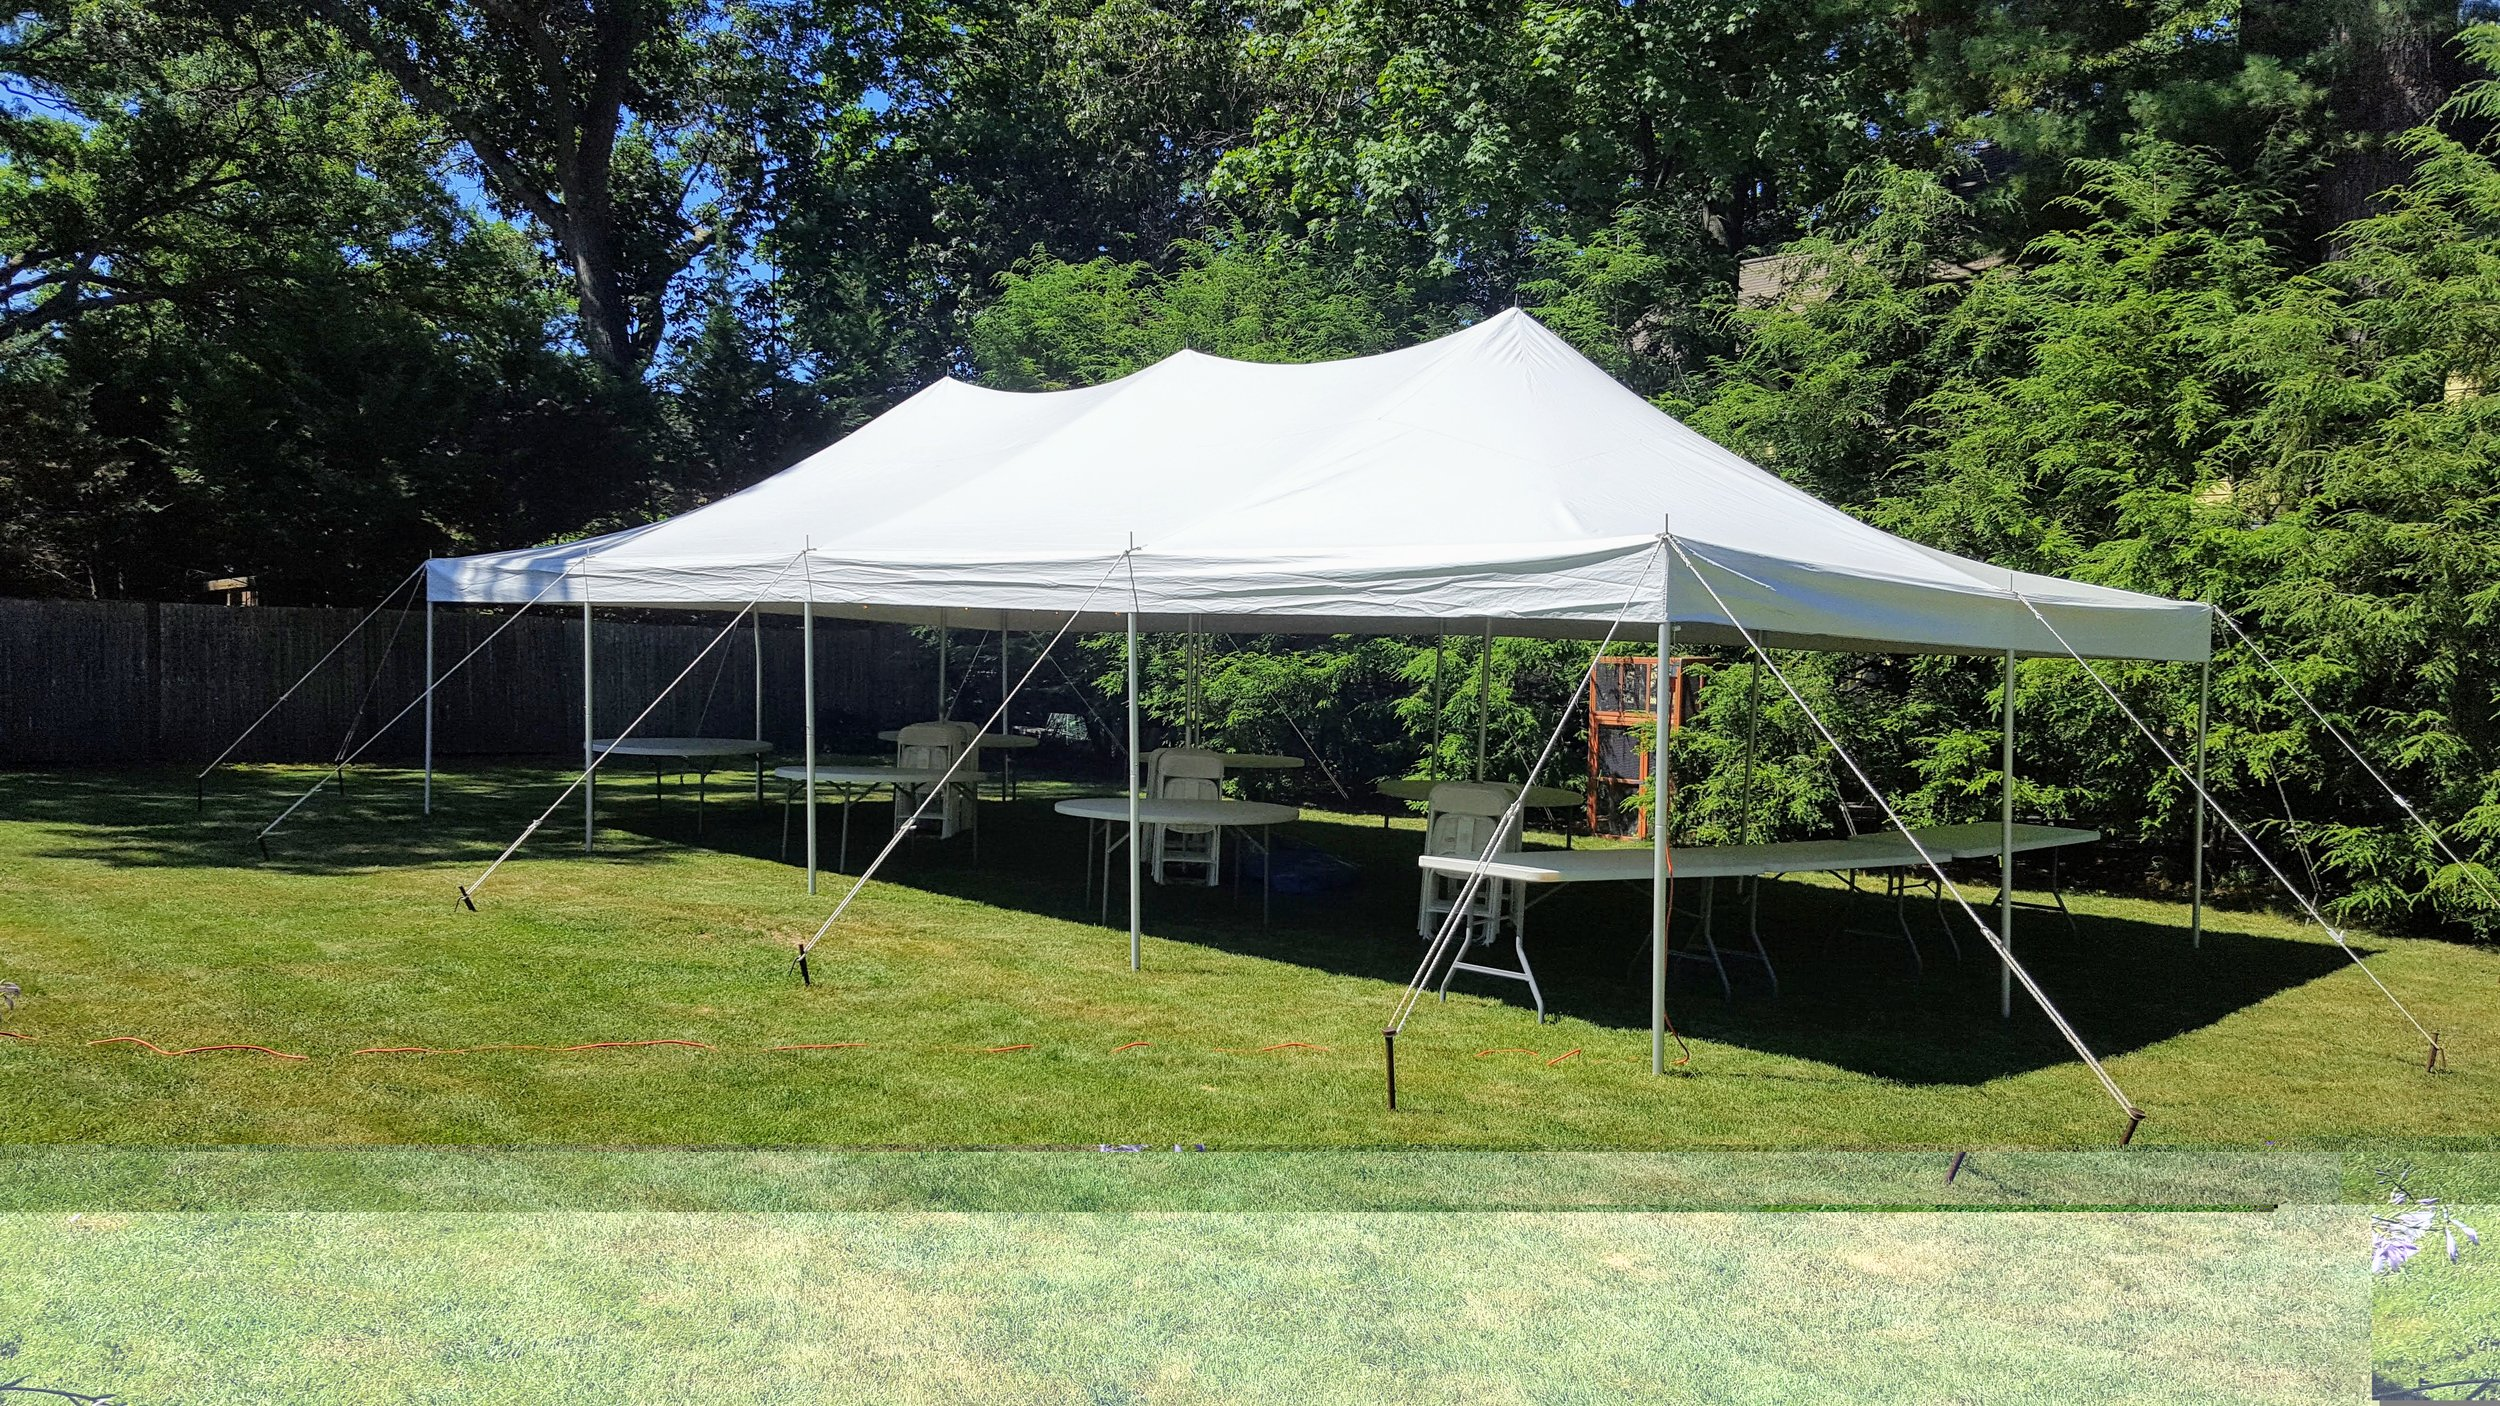 This is a canopy tent - Notice the ropes and stakes anchoring the tent in place.